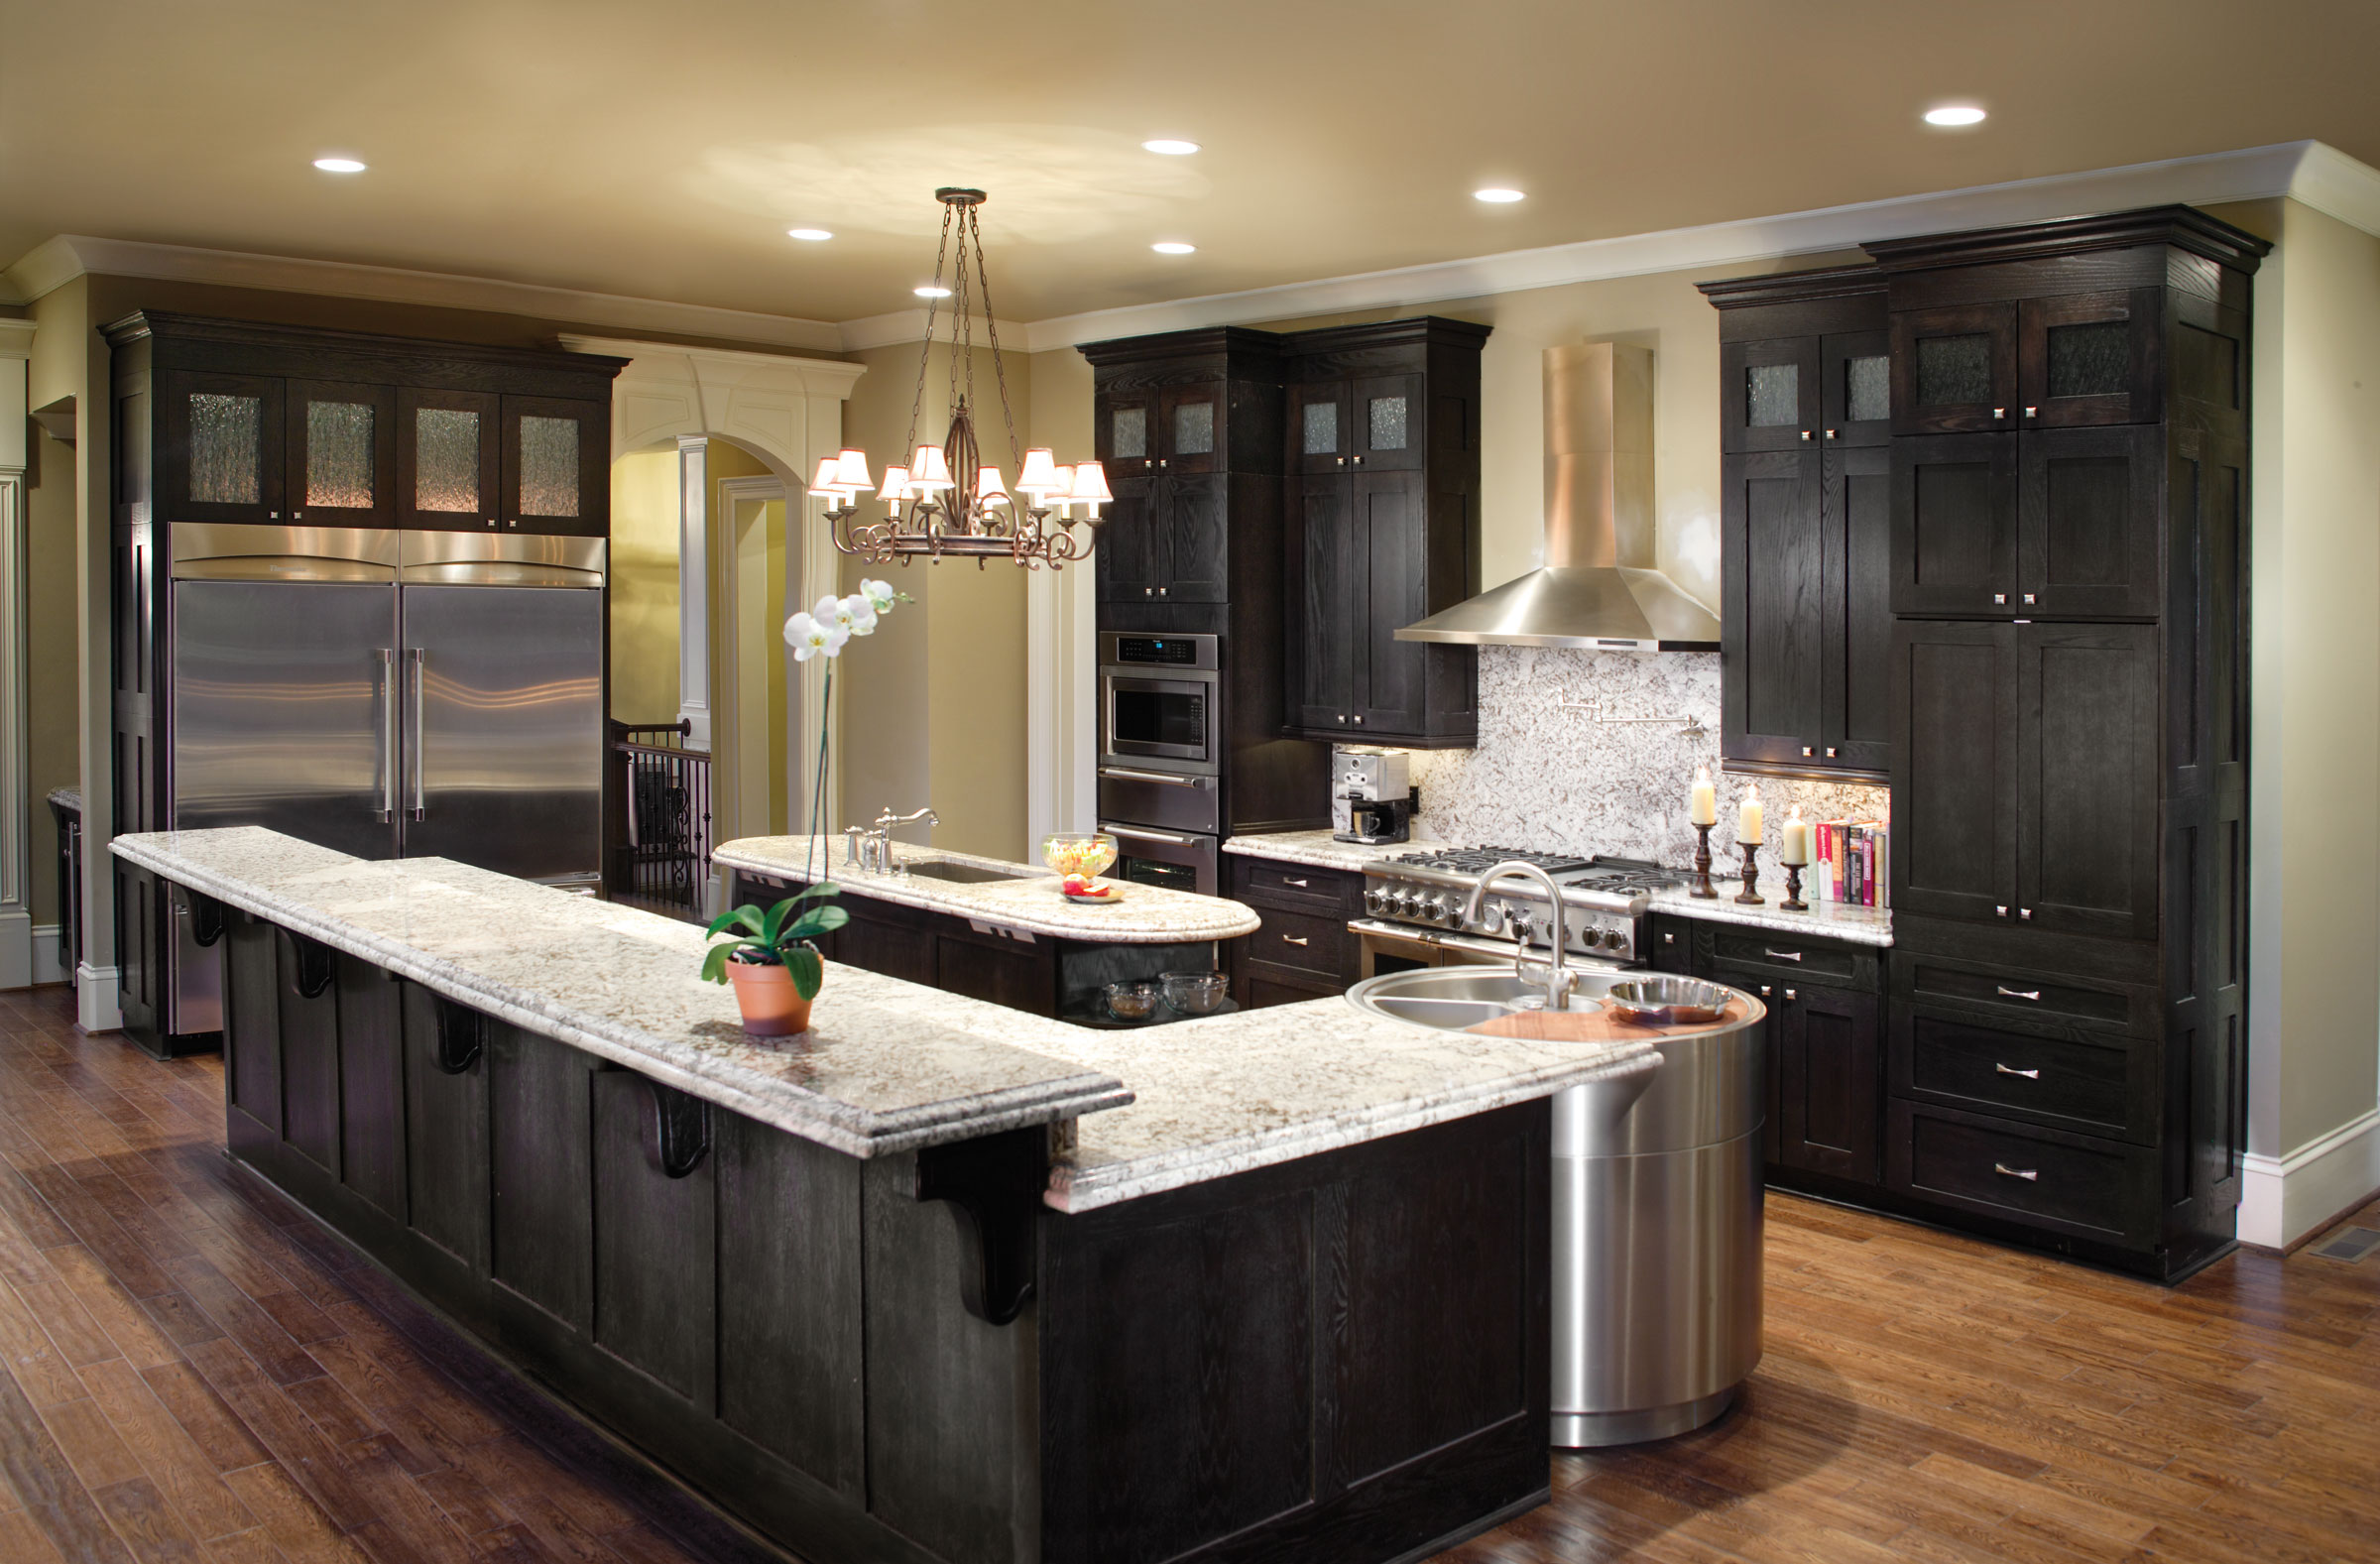 cabinetsbydesignaz best rated kitchen cabinets Custom Kitchen Bathroom Cabinets Company in Phoenix AZ Cabinet Maker